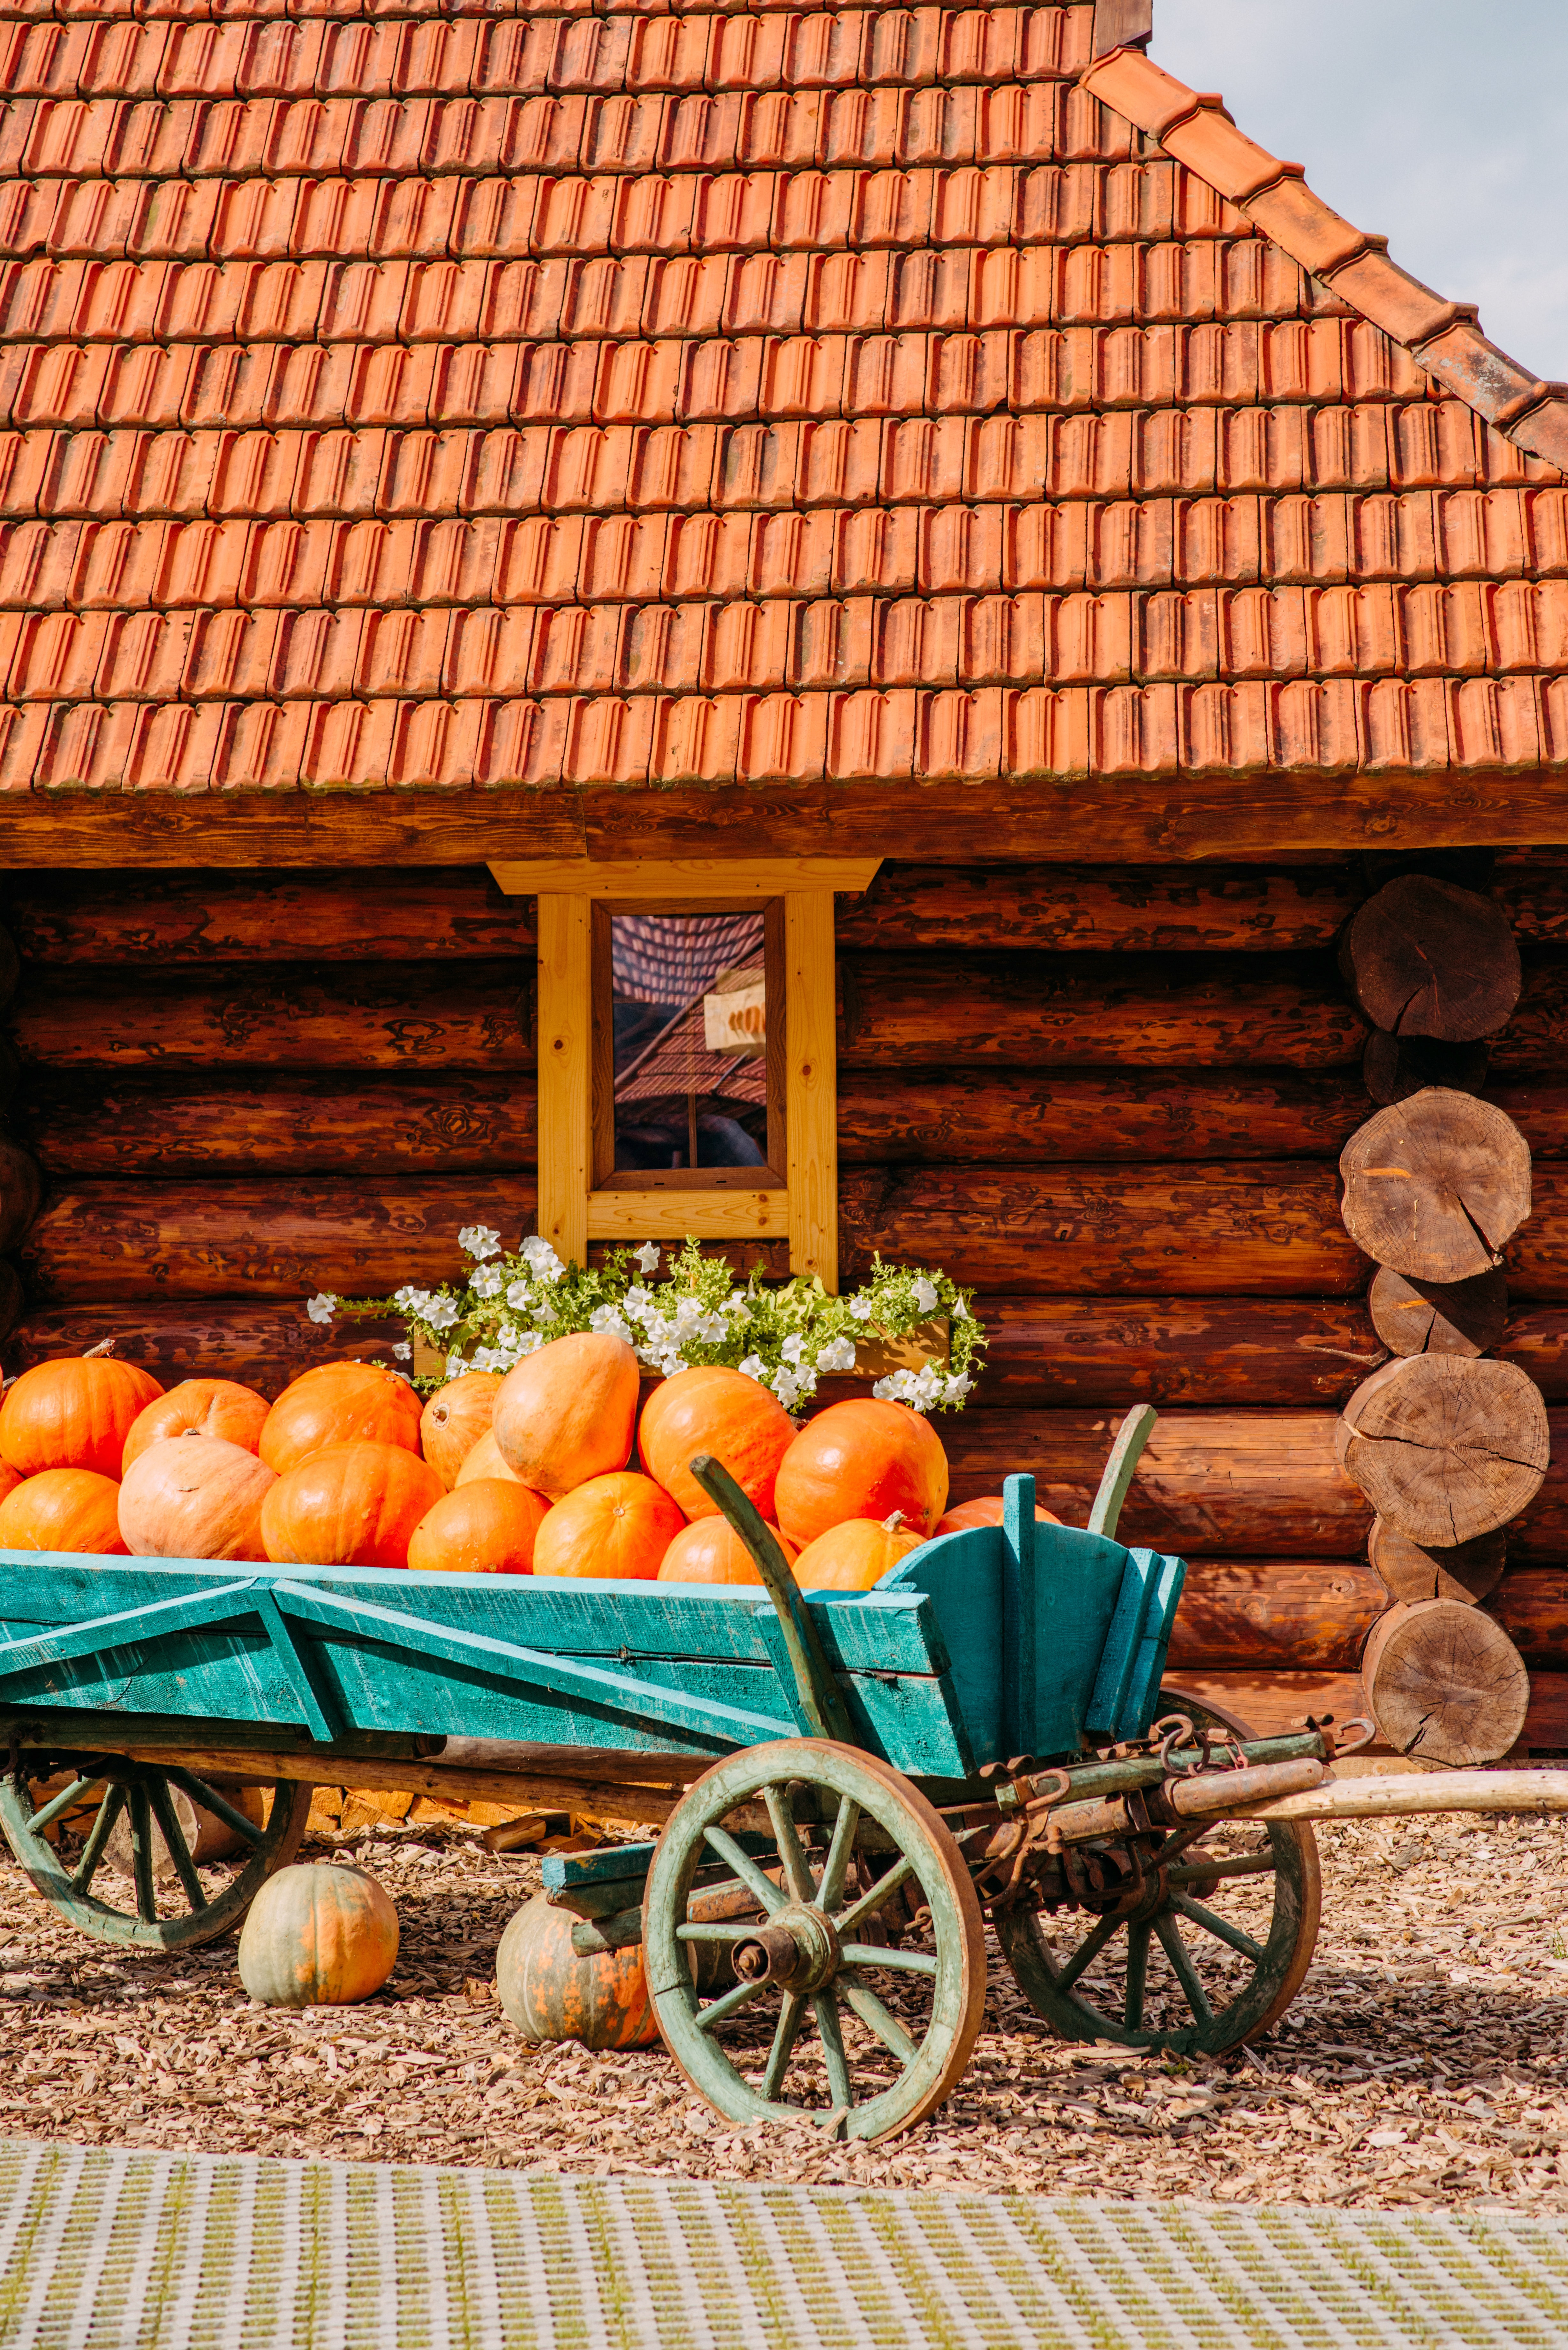 156511 download wallpaper Pumpkin, Miscellanea, Miscellaneous, House, Village, Harvest, Truck, Trolley screensavers and pictures for free